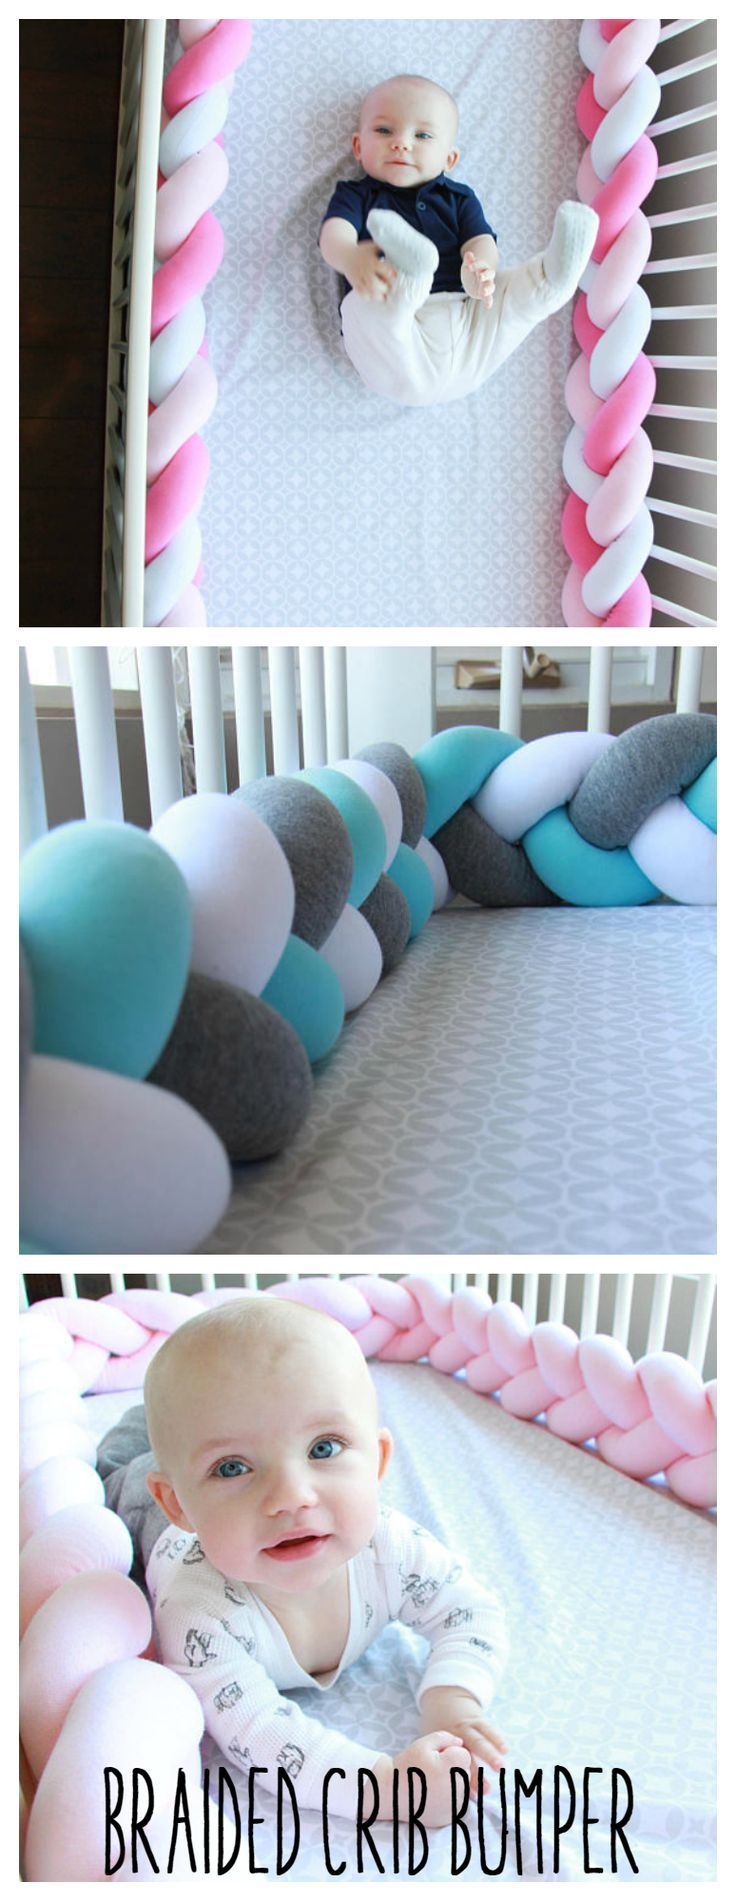 Braided Crib Bumper. Perfect for a baby shower gift. #baby #braided #cribbumper